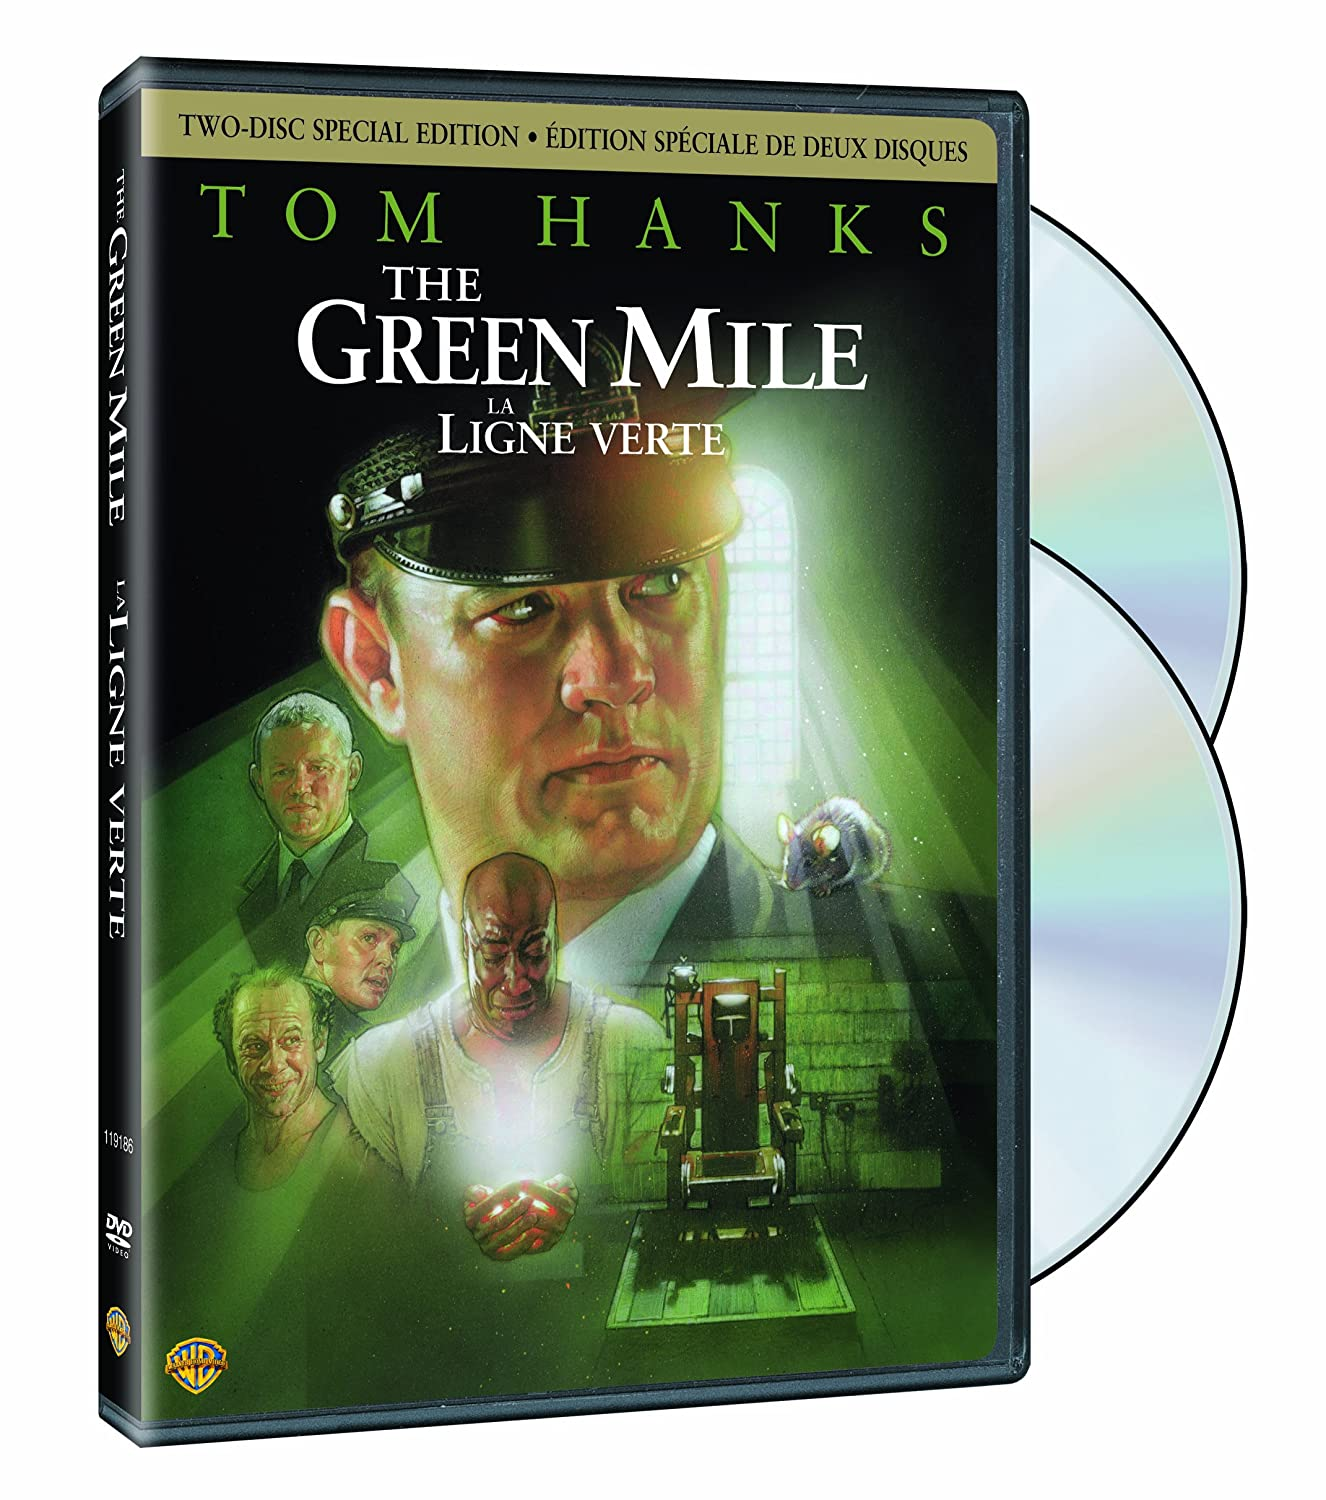 The Green Mile (Special Edition) (Bilingual) Tom Hanks Warner Bros. Home Video 1191865 Drama